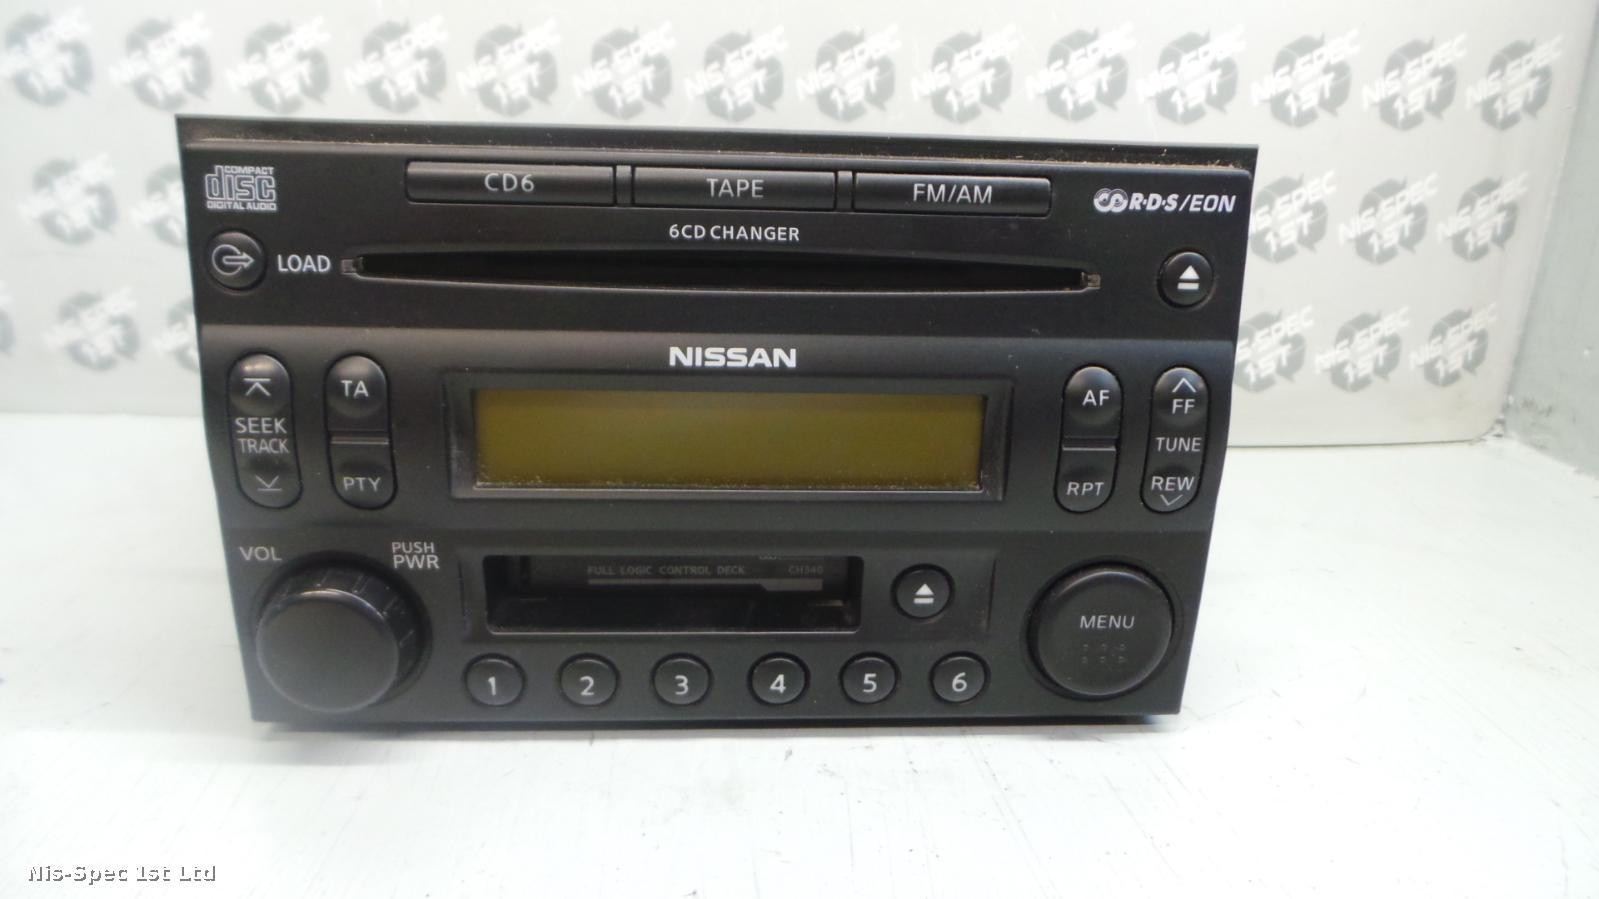 X TRAIL RADIO 6 CD TAPE PLAYER PART NUMBER 28188 EQ300